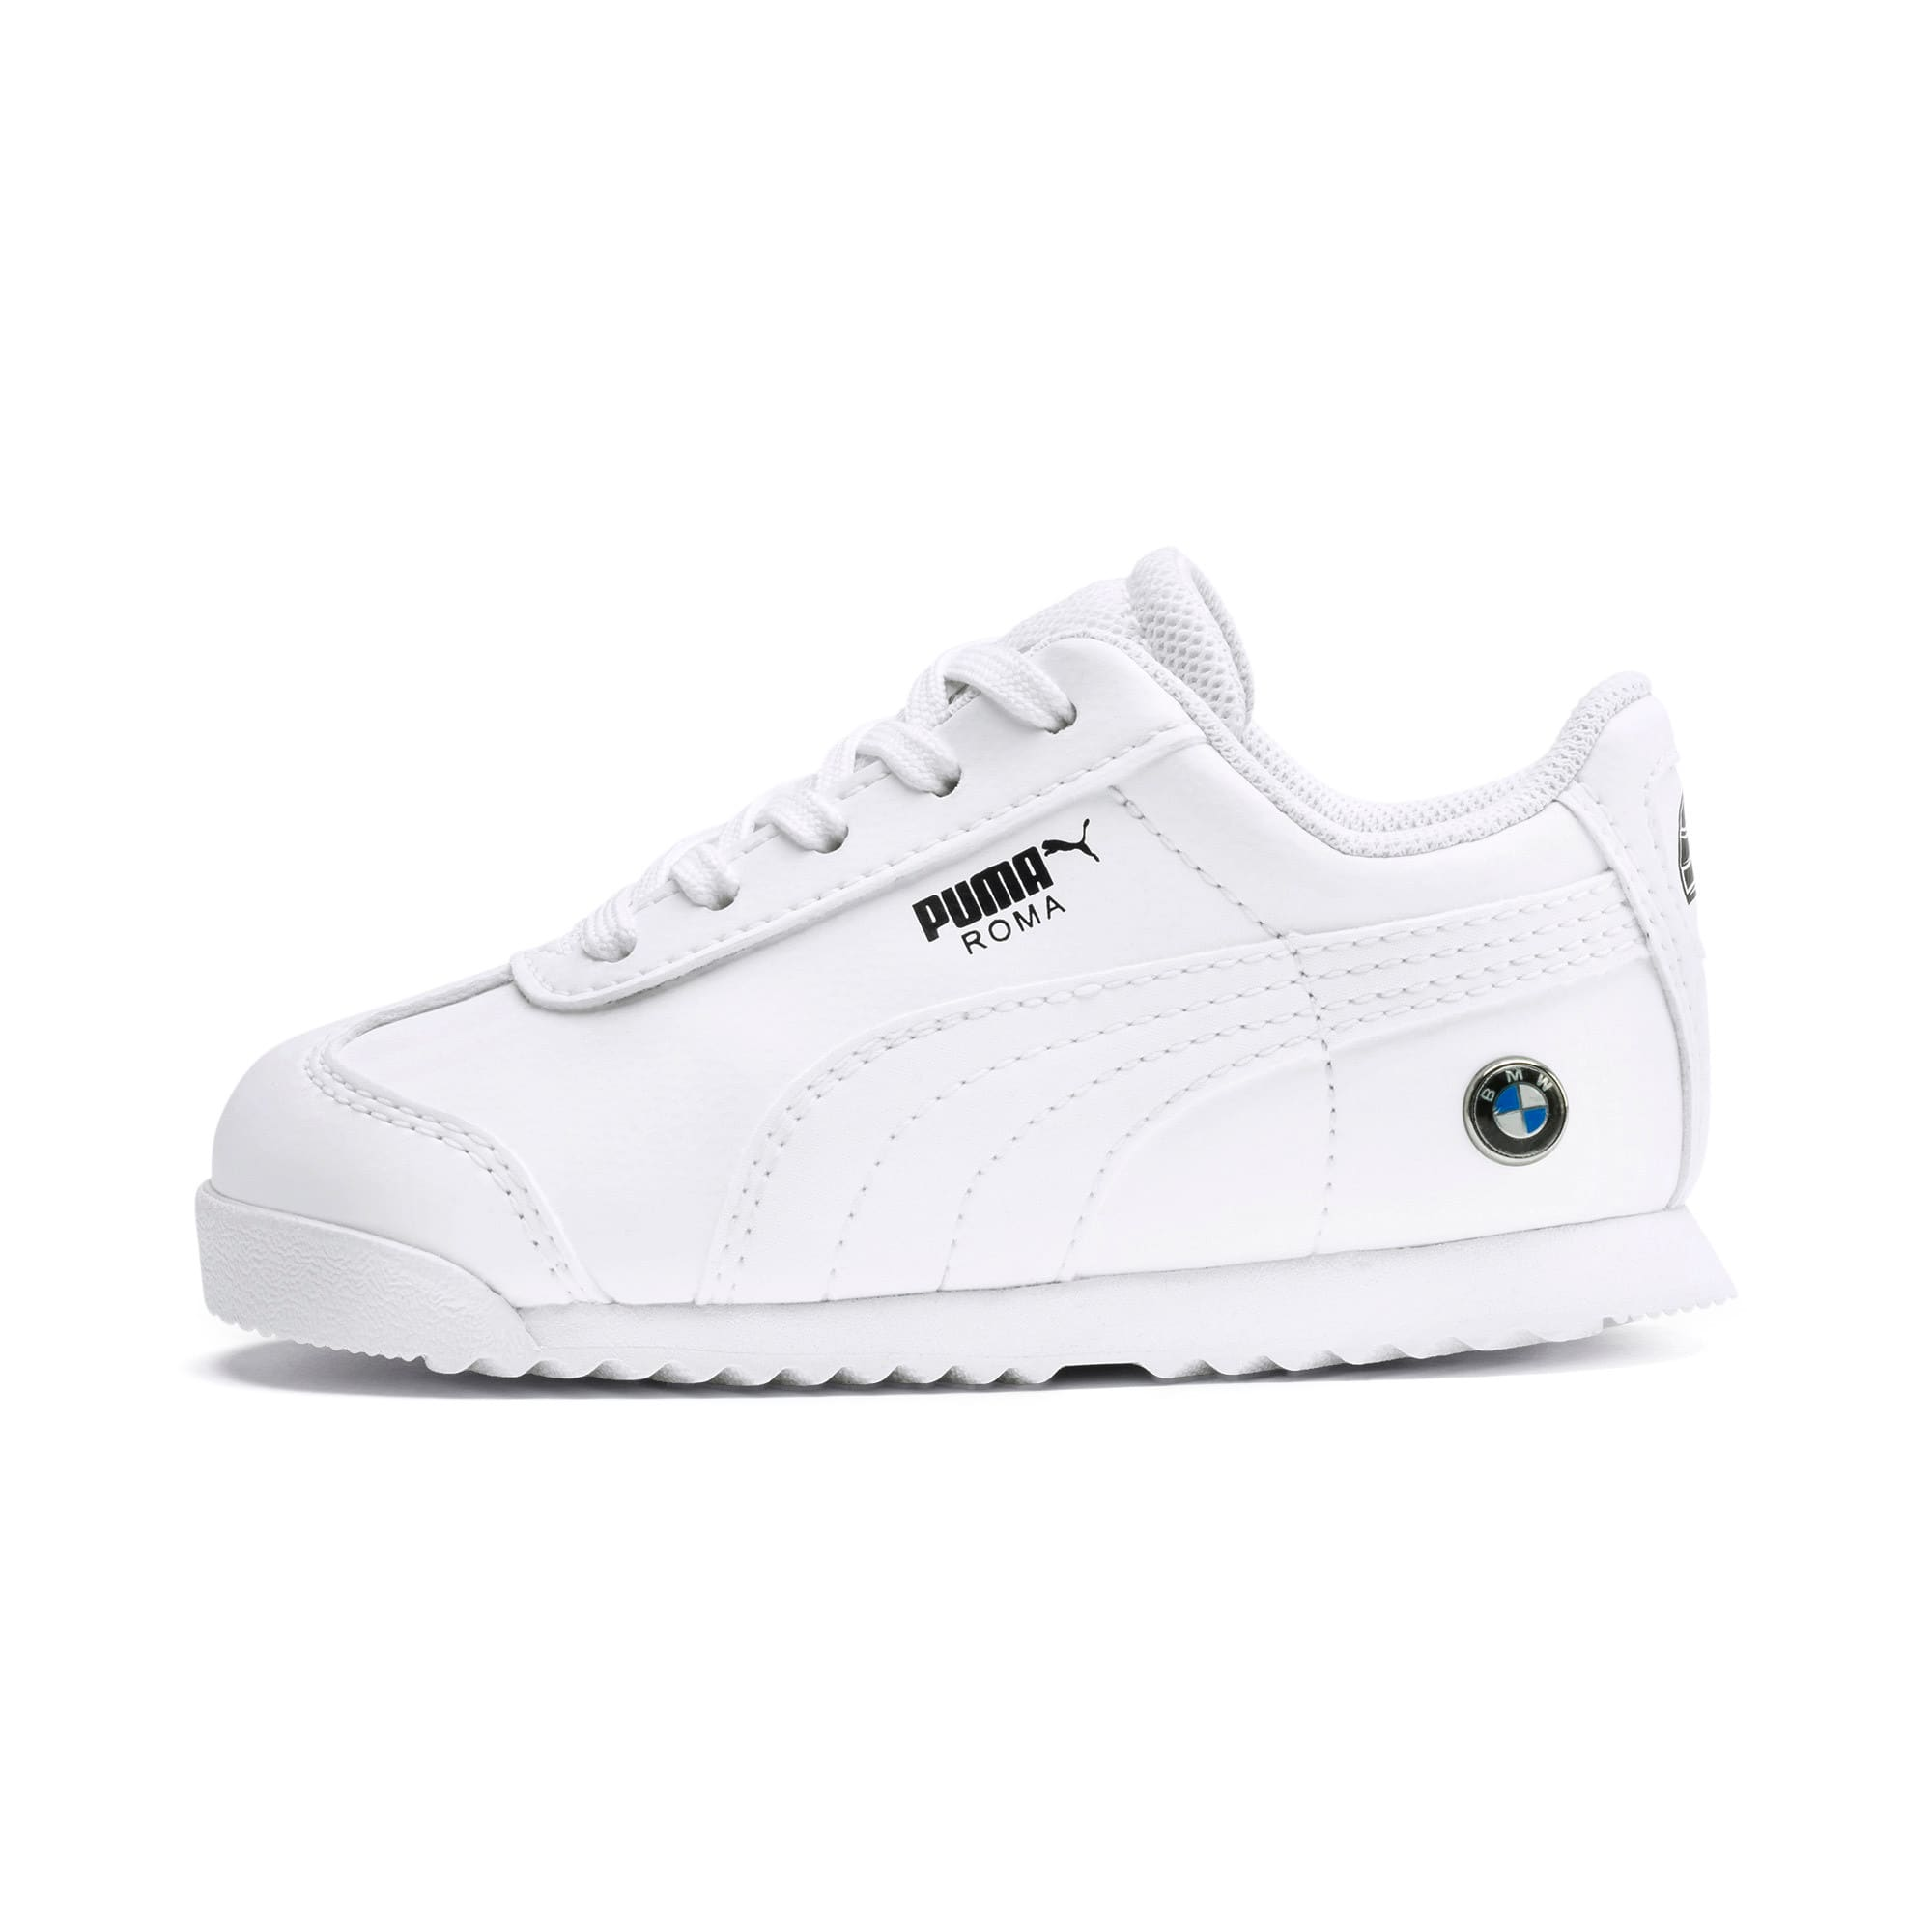 Thumbnail 1 of BMW M Motorsport Roma Toddler Shoes, Puma White-Puma White, medium